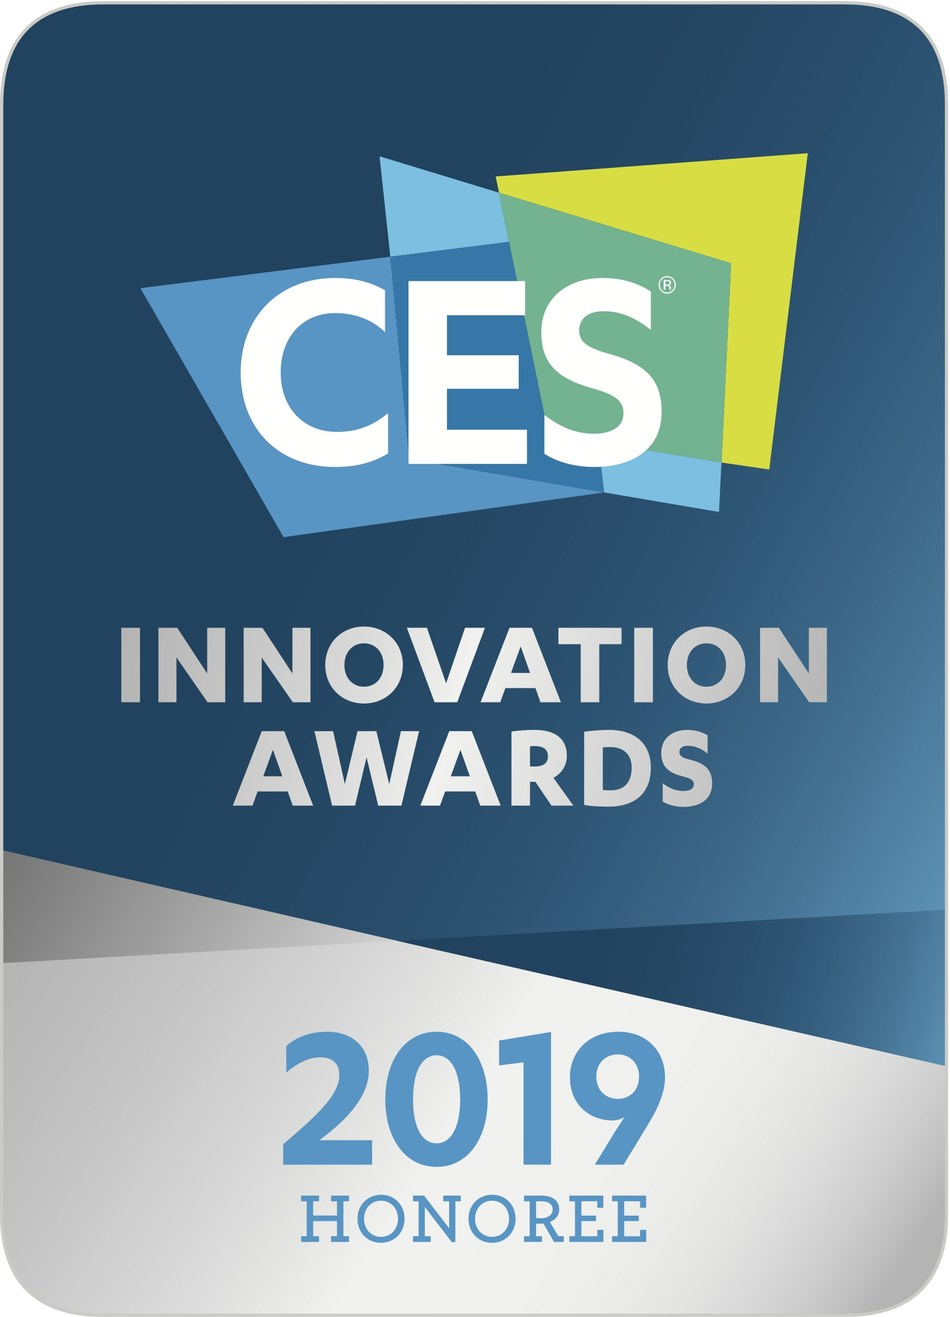 LARQ Named CES 2019 Innovation Awards Honoree